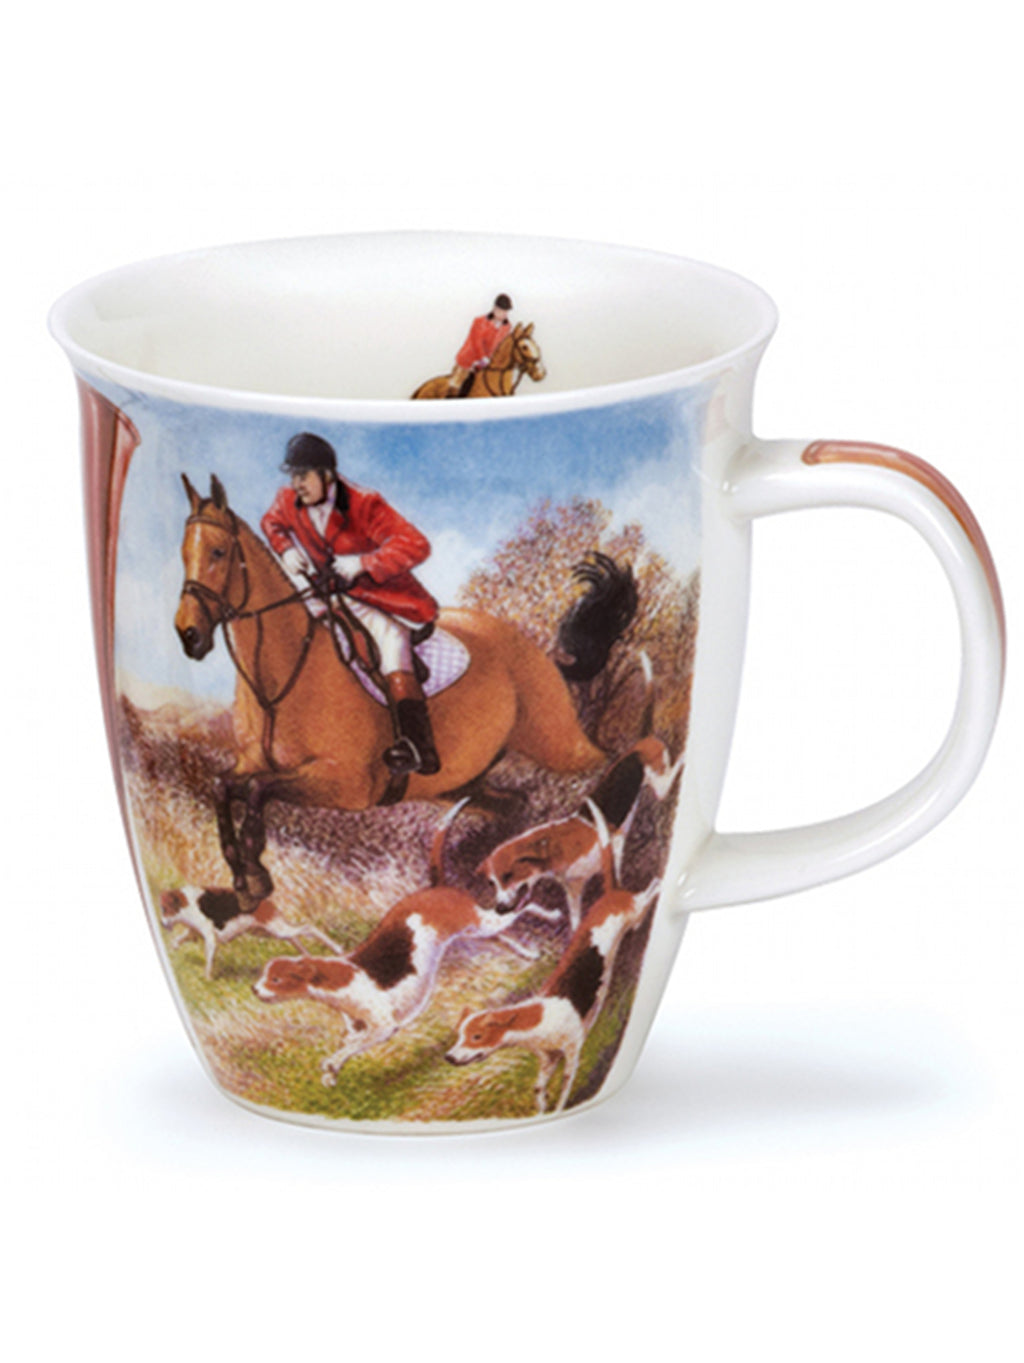 Buy Dunoon Mugs in Canada Nevis Country Sports Hunting Fine Bone China Handmade in England Tea Coffee Red Scarf Equestrian